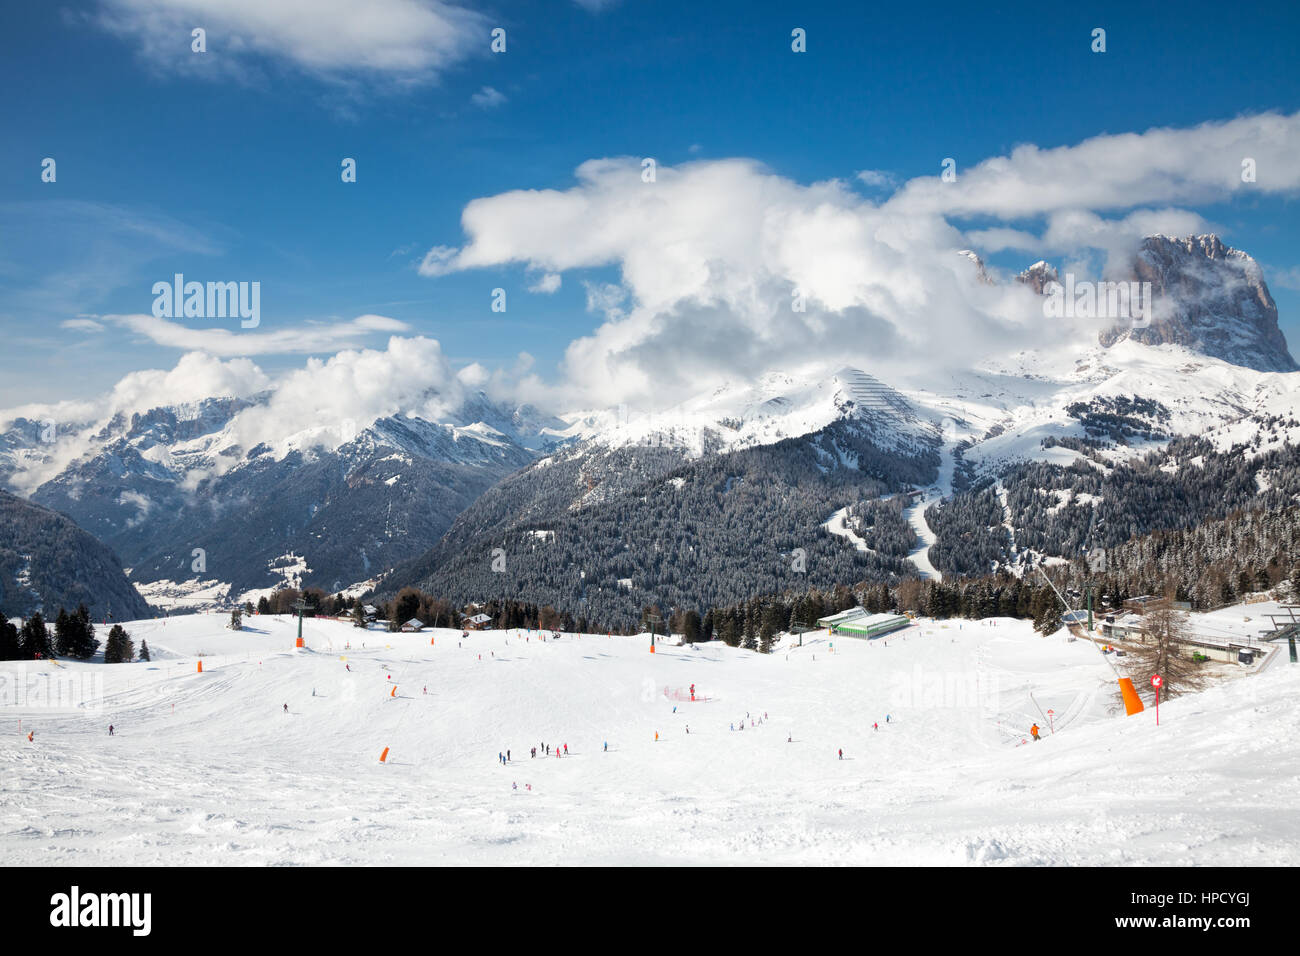 View of a ski resort area in Italy - Stock Image